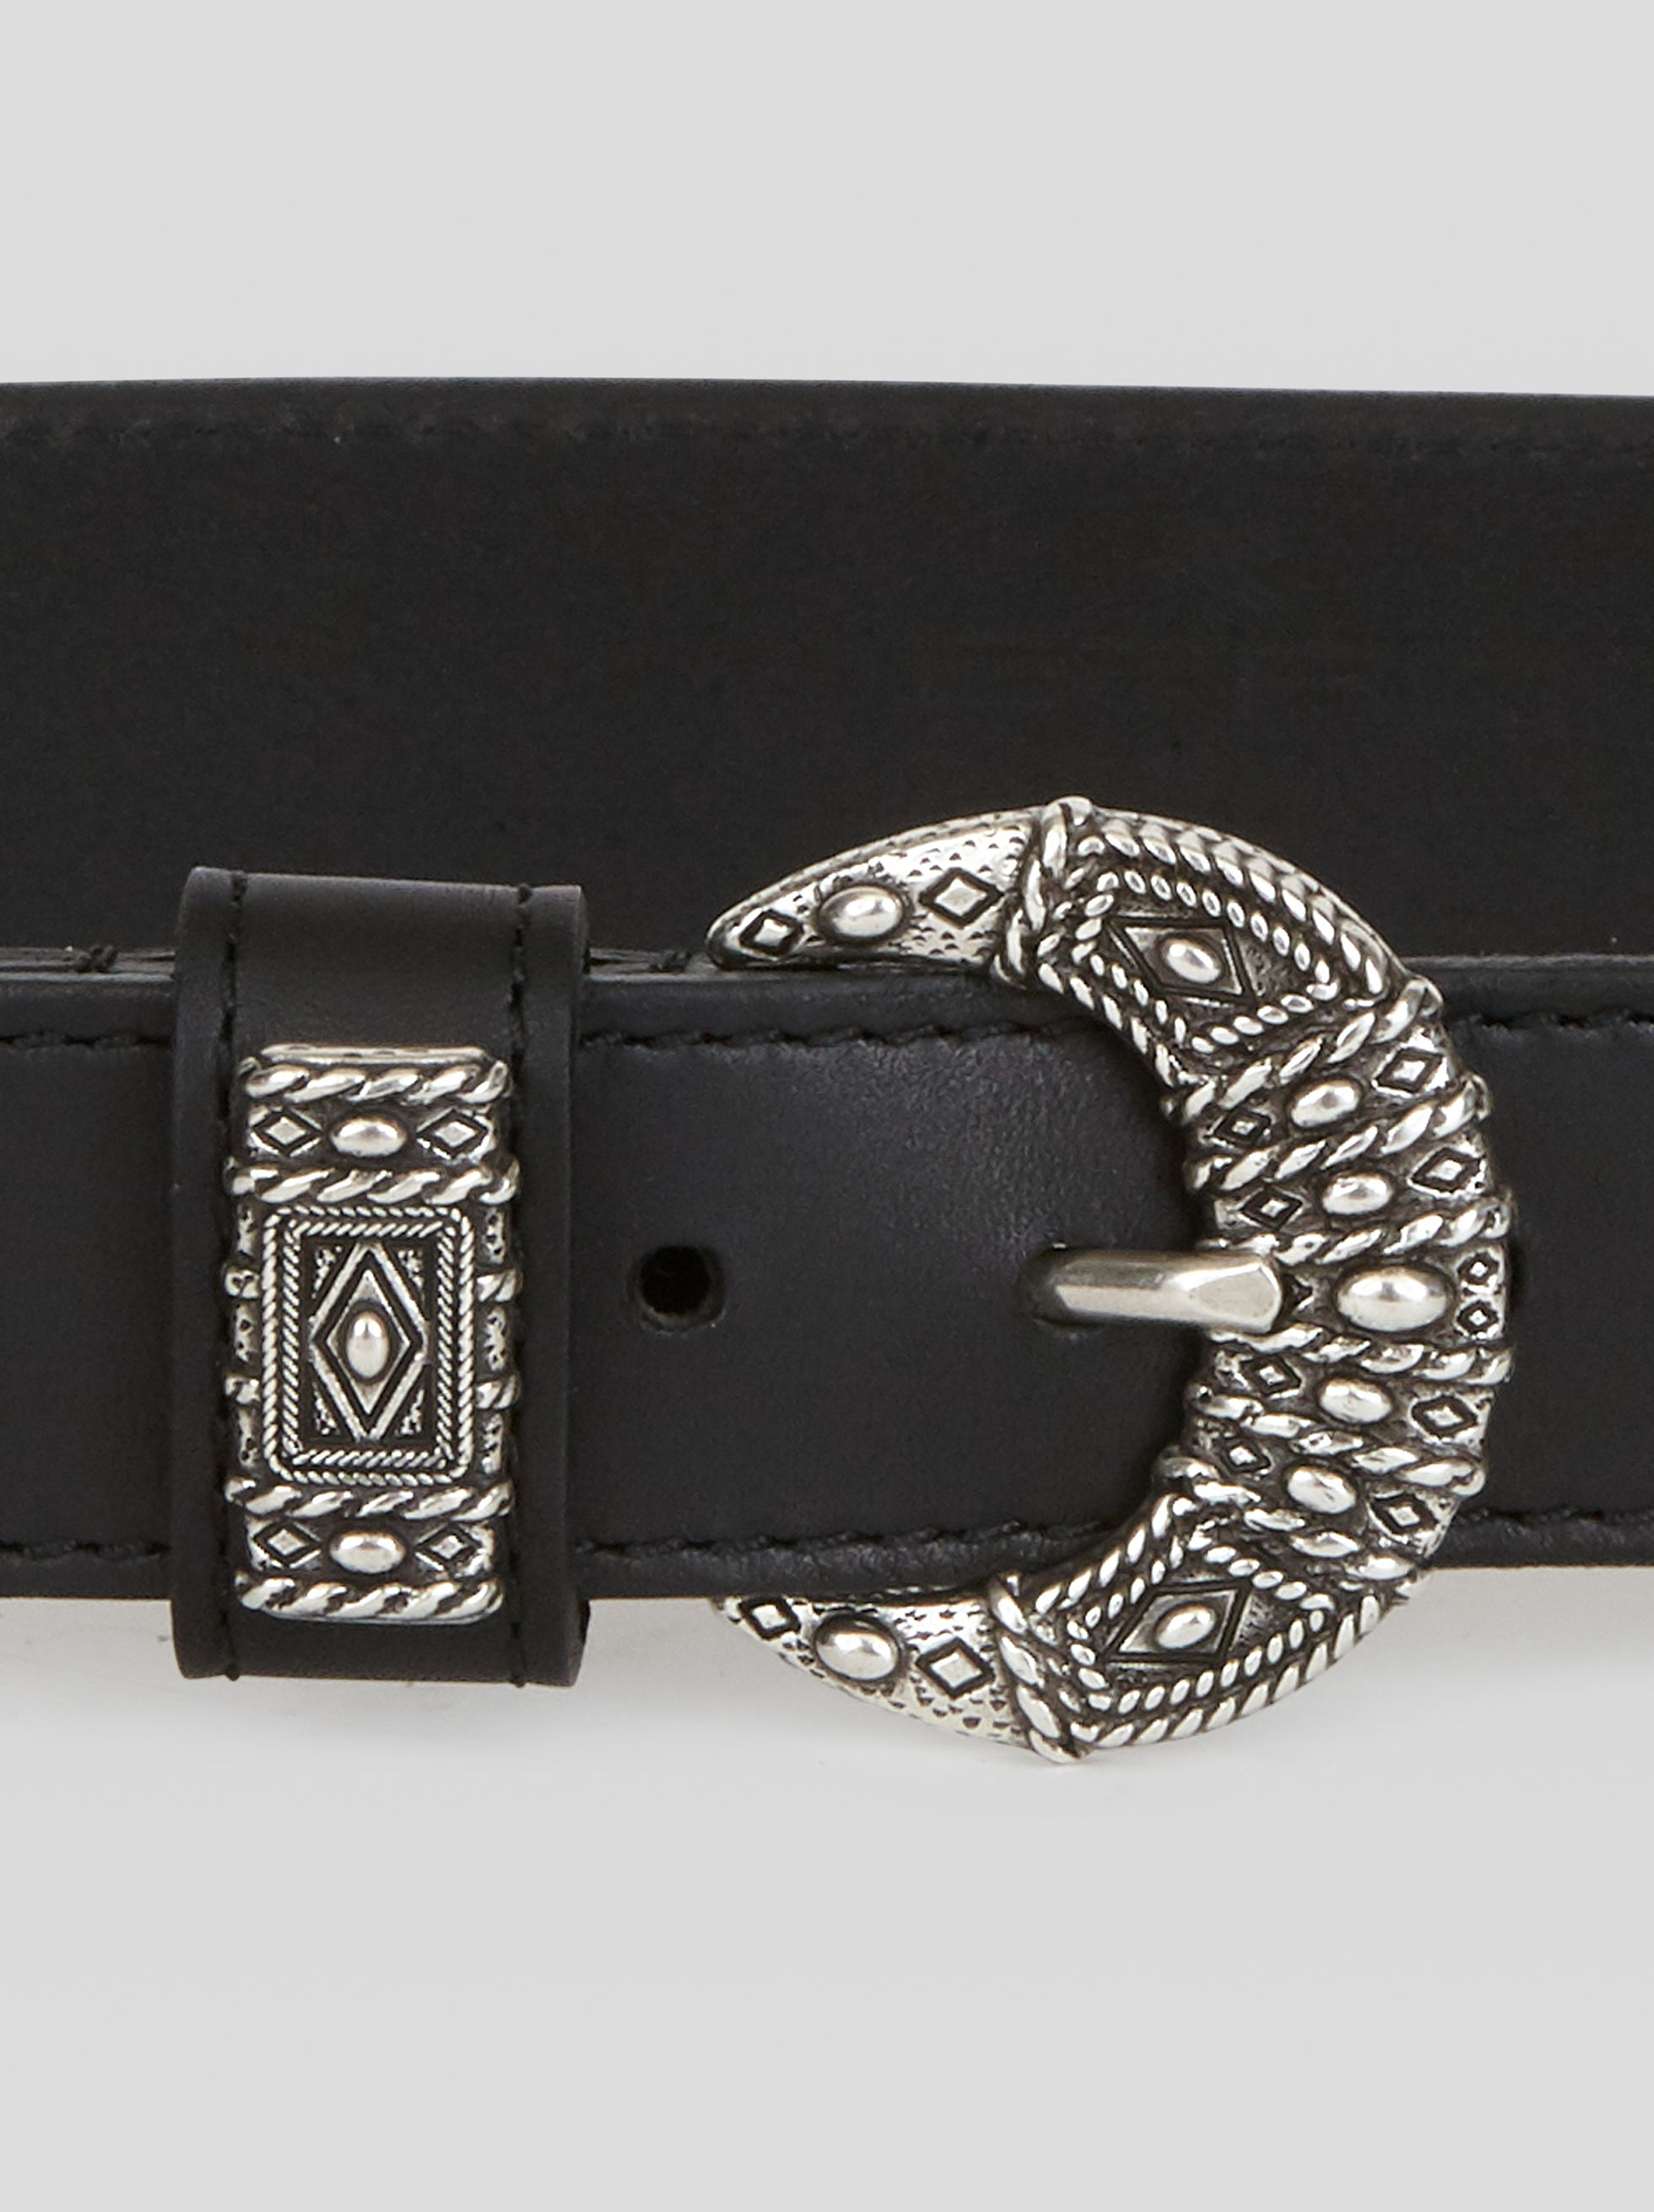 LEATHER BELT WITH MOTHER-OF-PEARL DETAILS